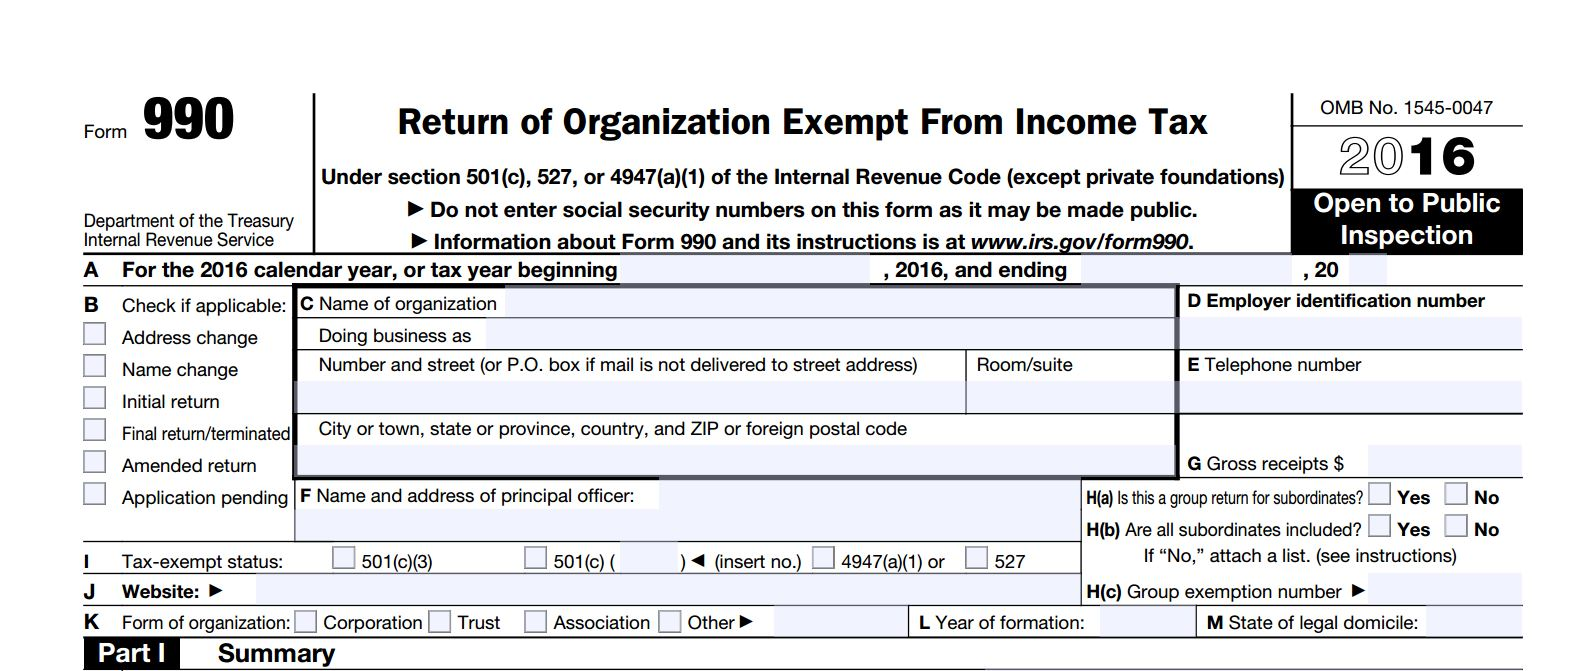 Understanding The IRS Form 990